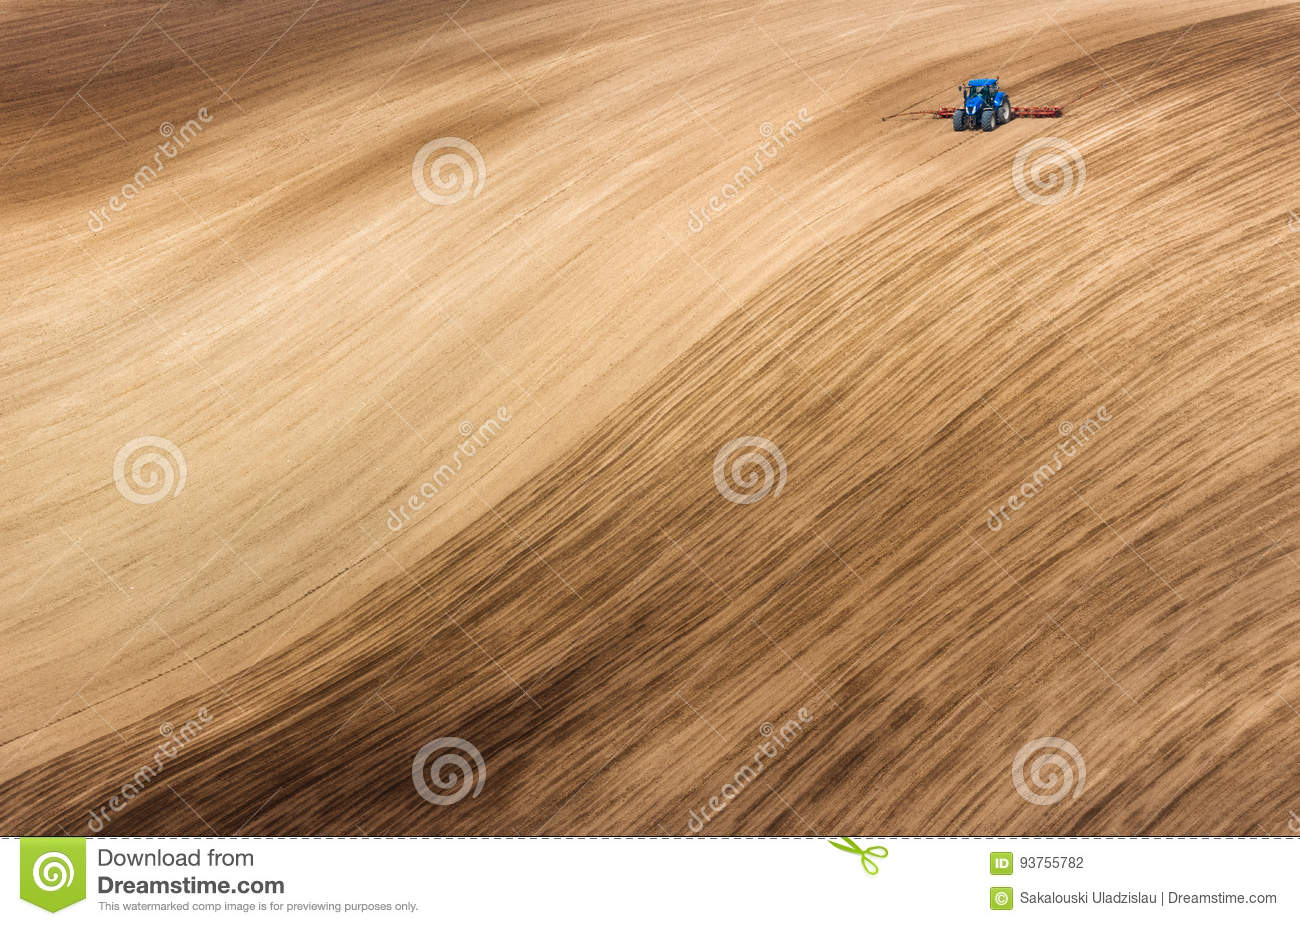 Blue Small Tractor Ploughing Brown Wavy Field. Scenic View Of Farming Tractor Which Plowing Spring Field.